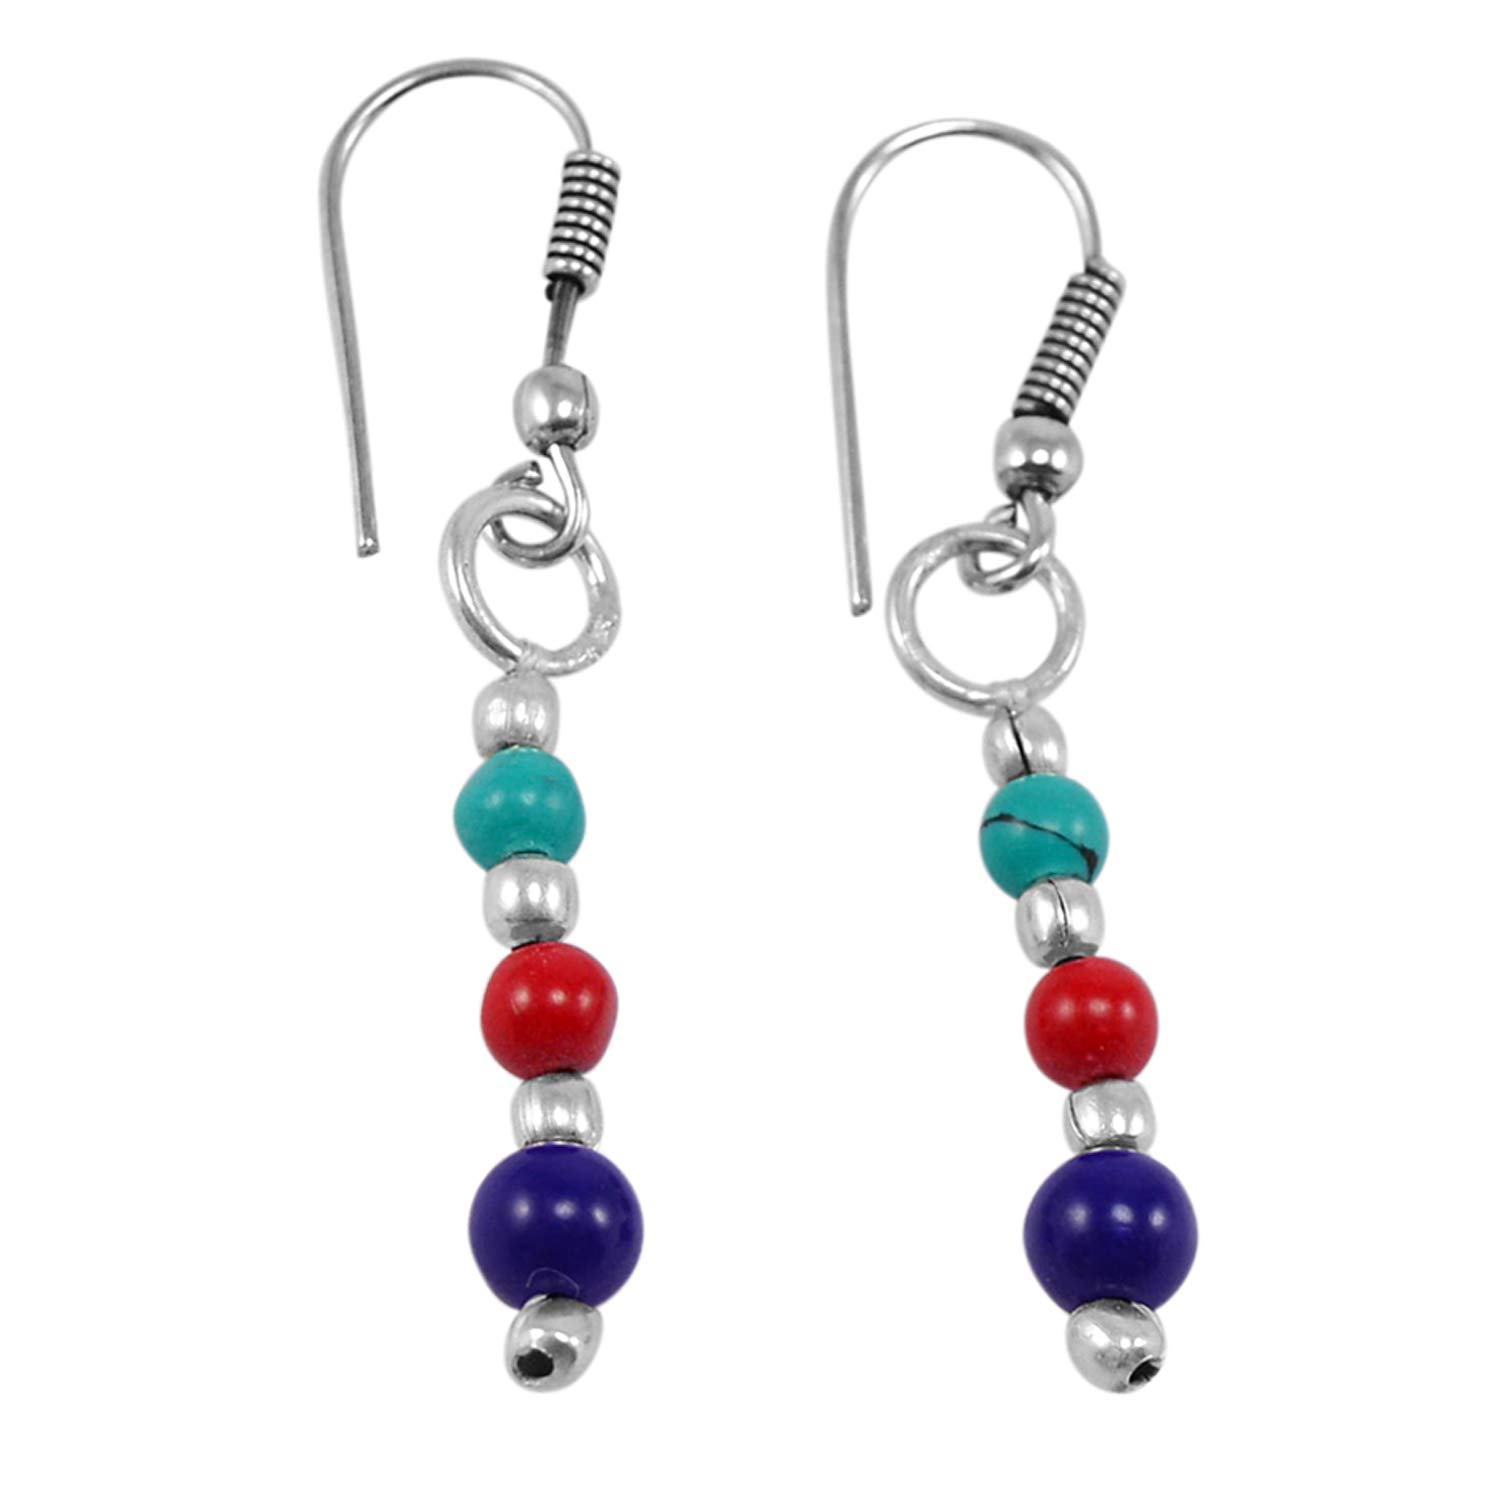 Silvestoo Jaipur Turquoise Red /& Blue Crystal Gemstone 925 Silver Plated Dangle Earring PG-130758